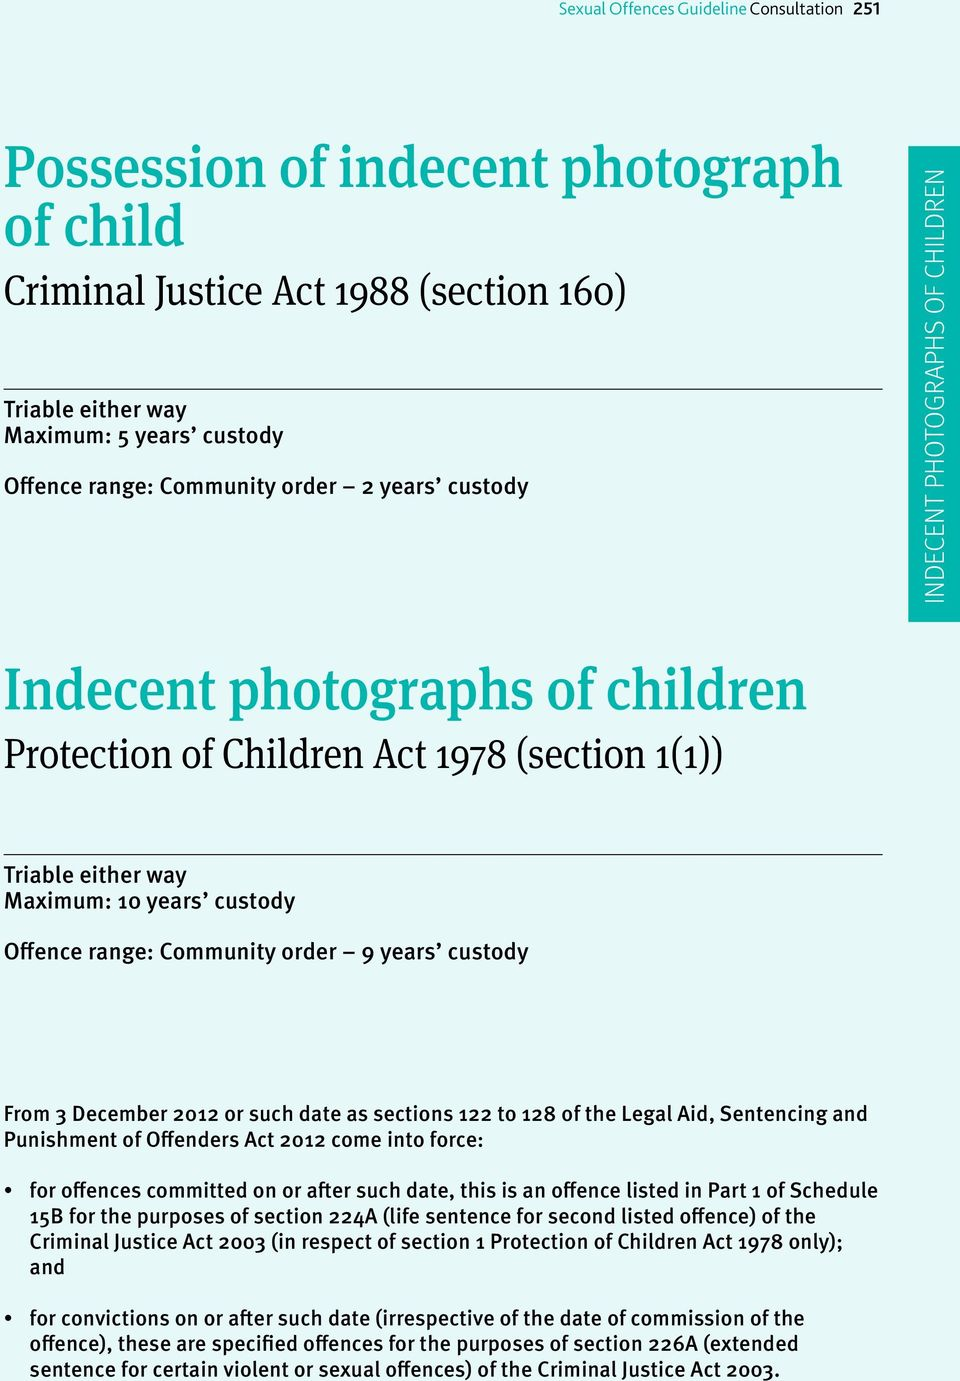 Sexual offences act 2003 sentencing can